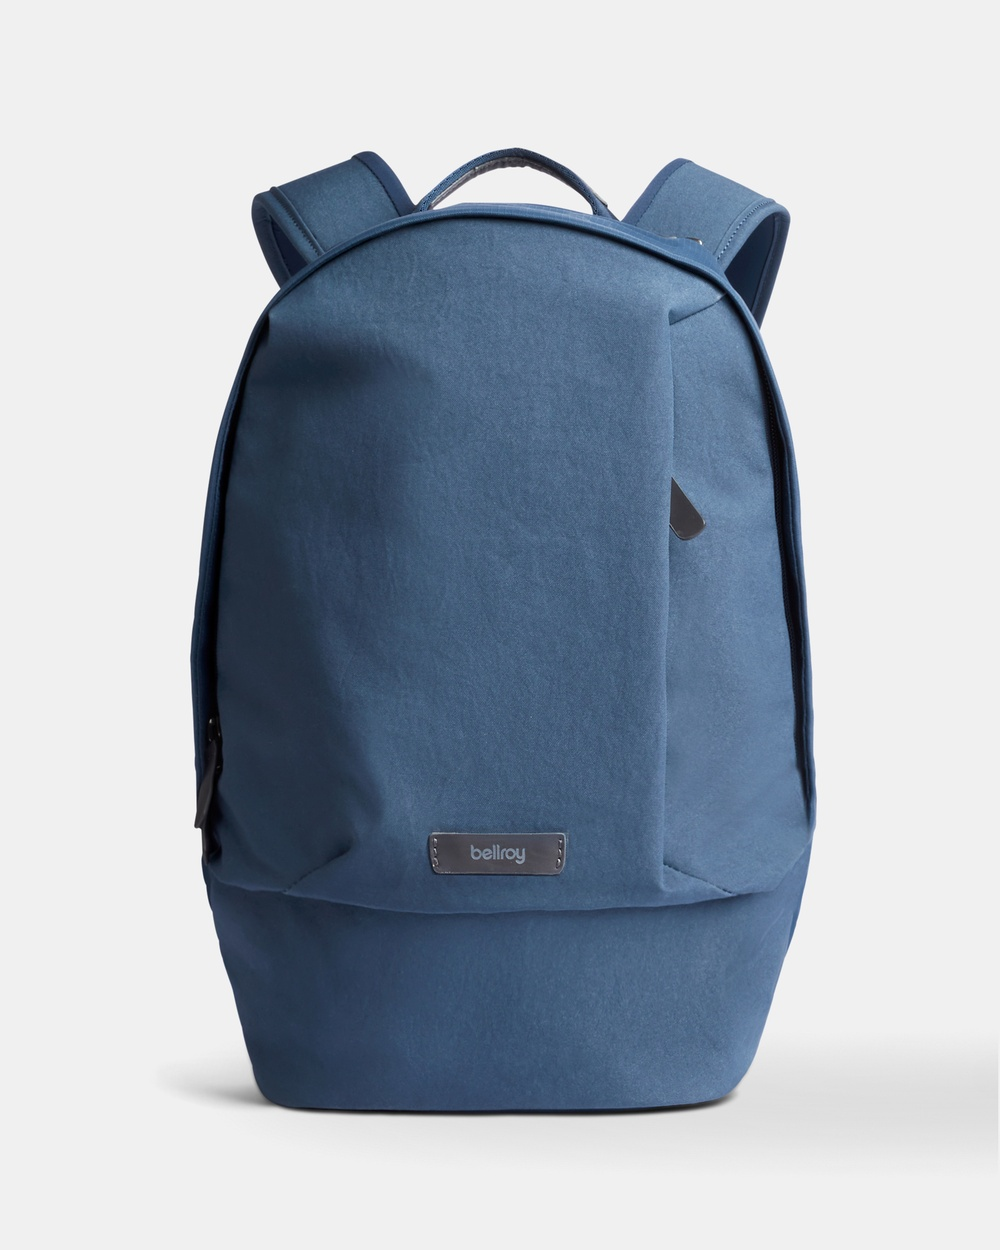 Bellroy Classic Backpack Compact Backpacks blue